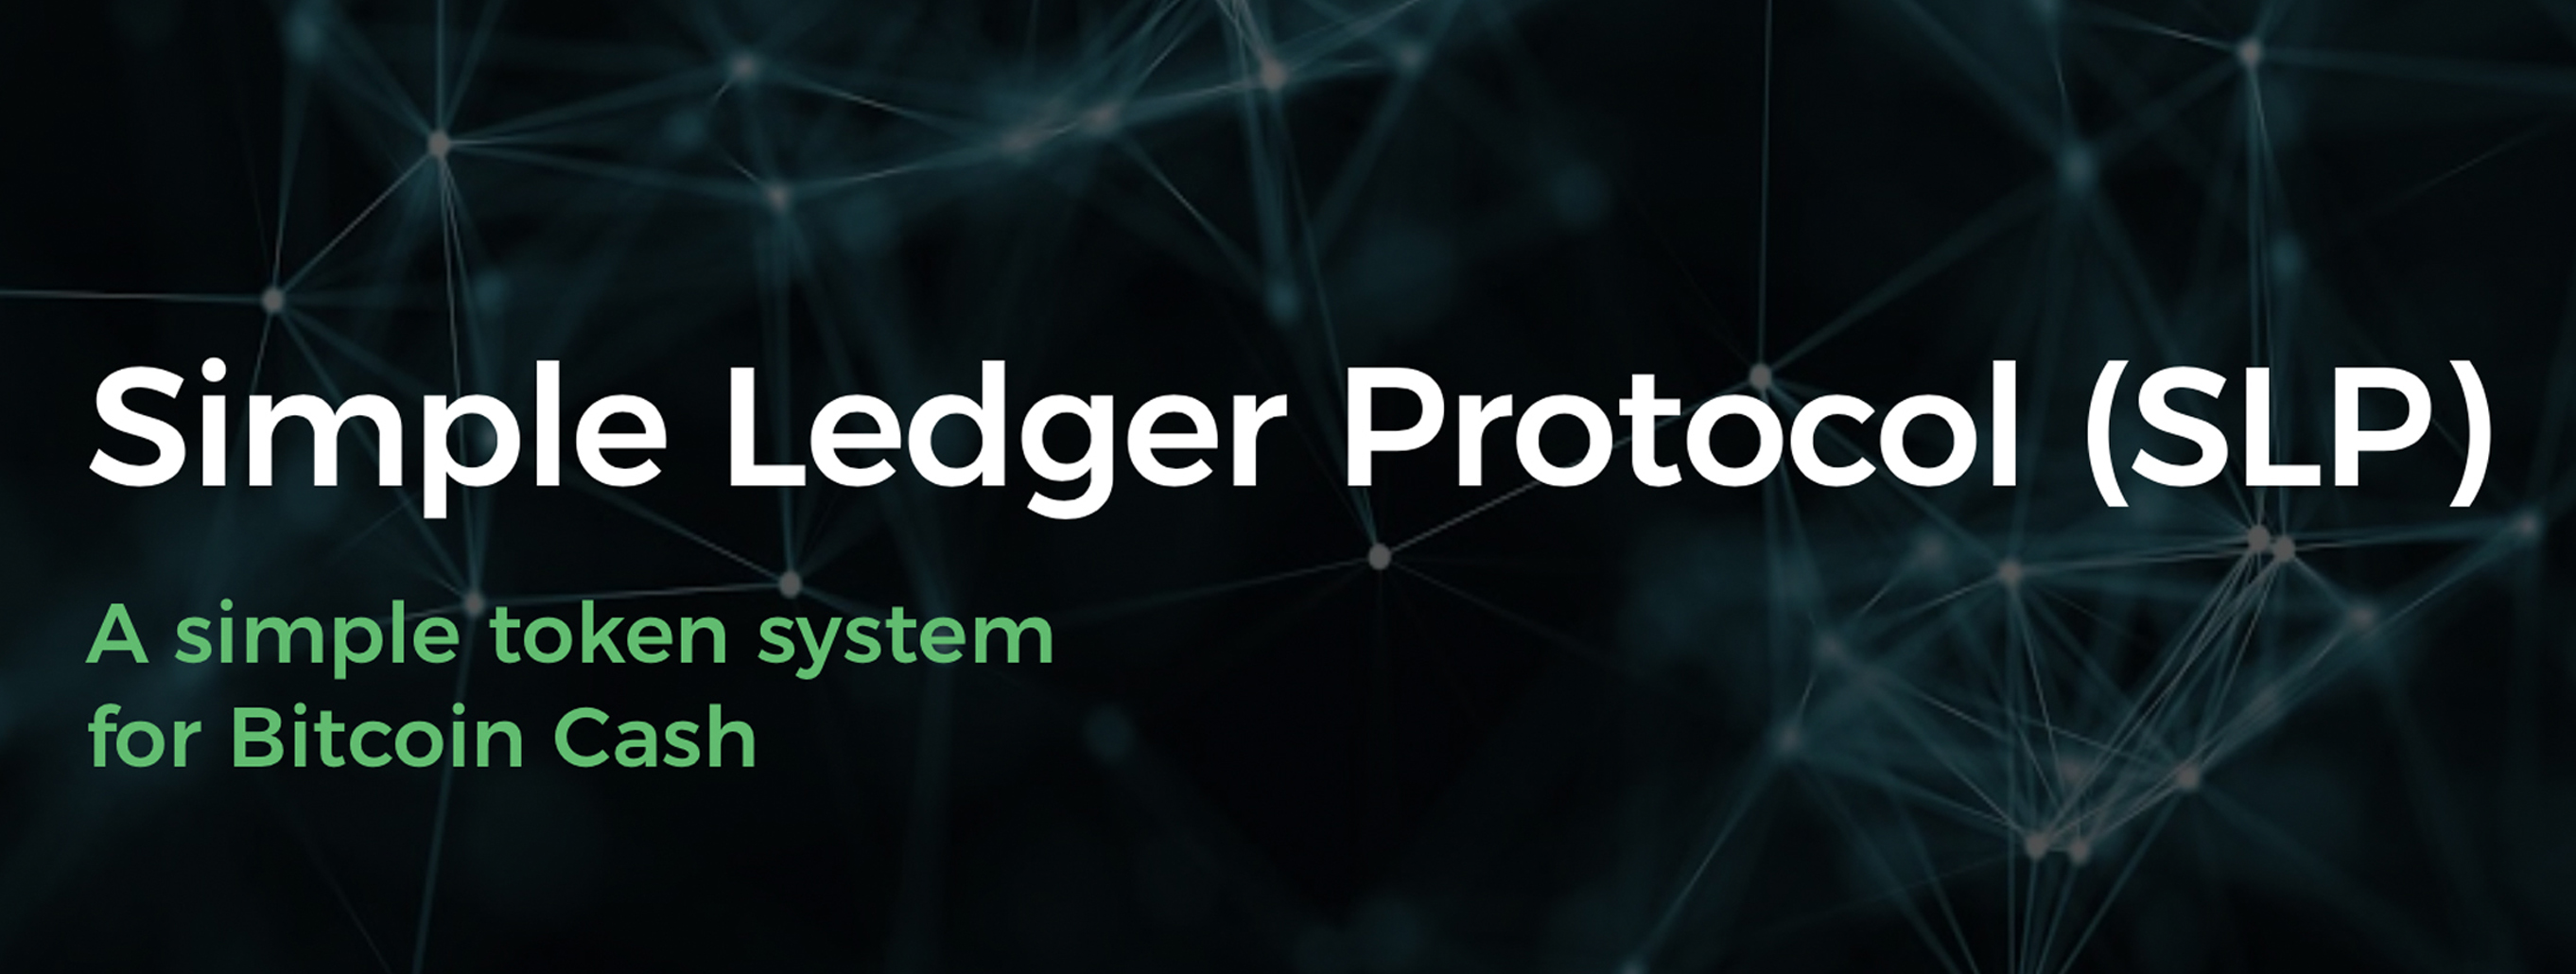 Simple Ledger Protocol Announces Virtual Hackathon Devoted to SLP Token Ecosystem